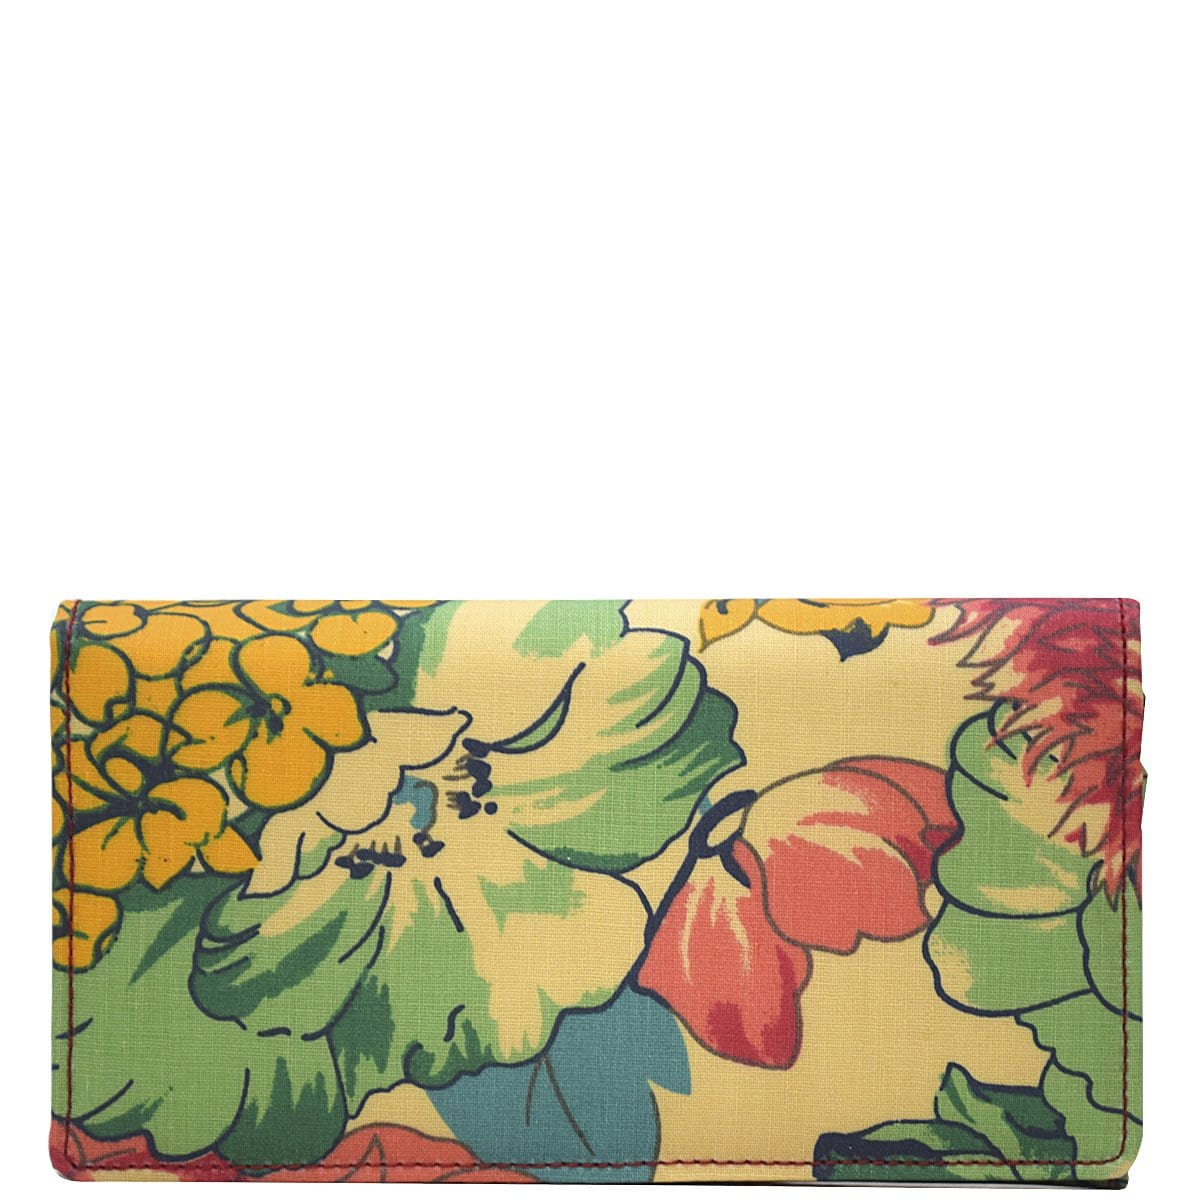 Wider Window Wallet - Green Yellow Flowers - Last One!